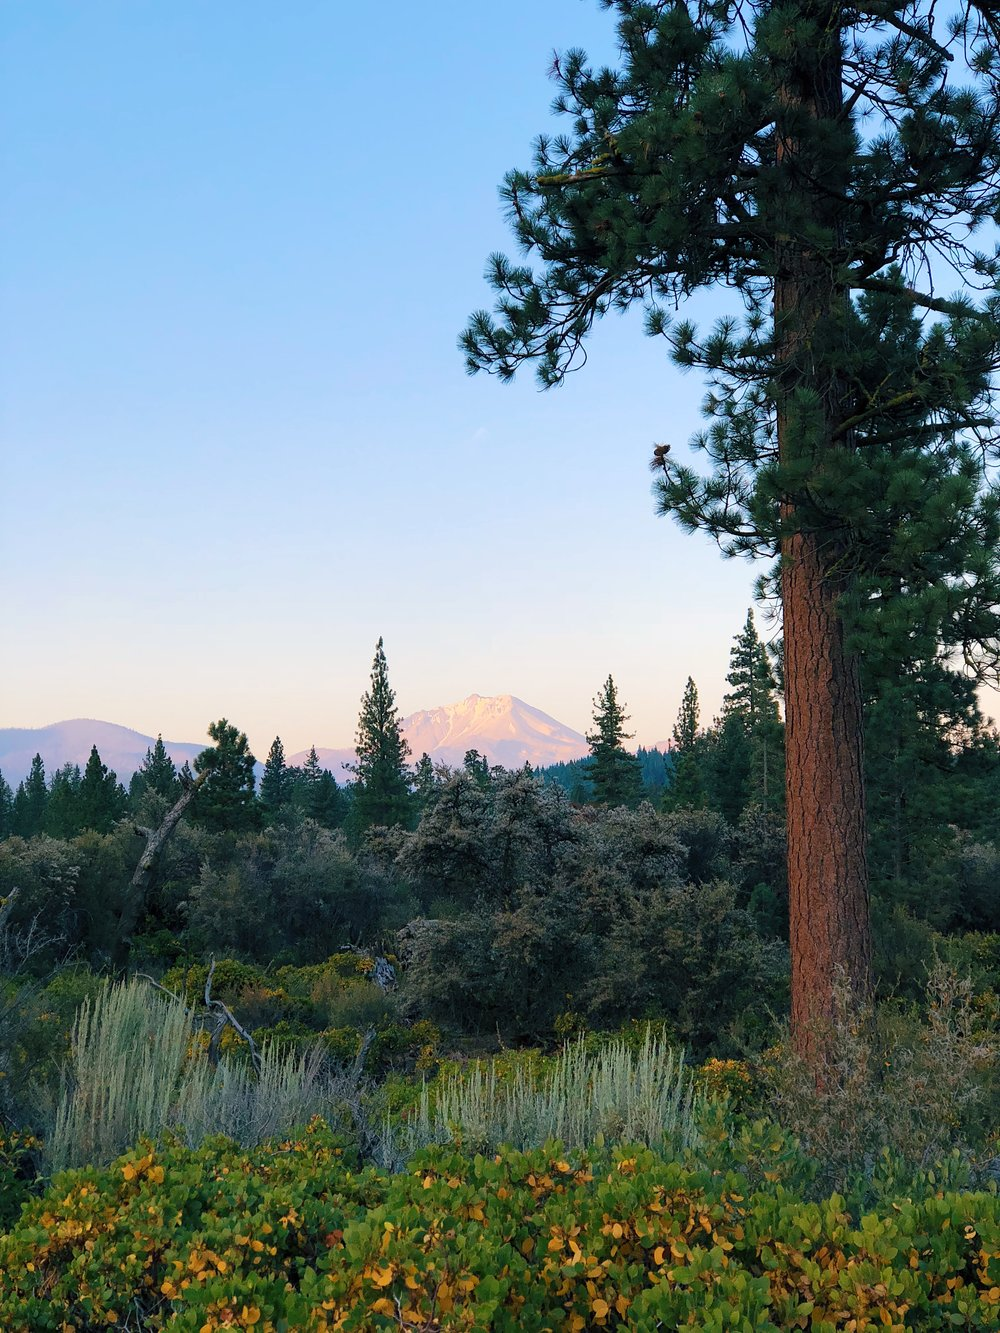 Alpenglow on Lassen!